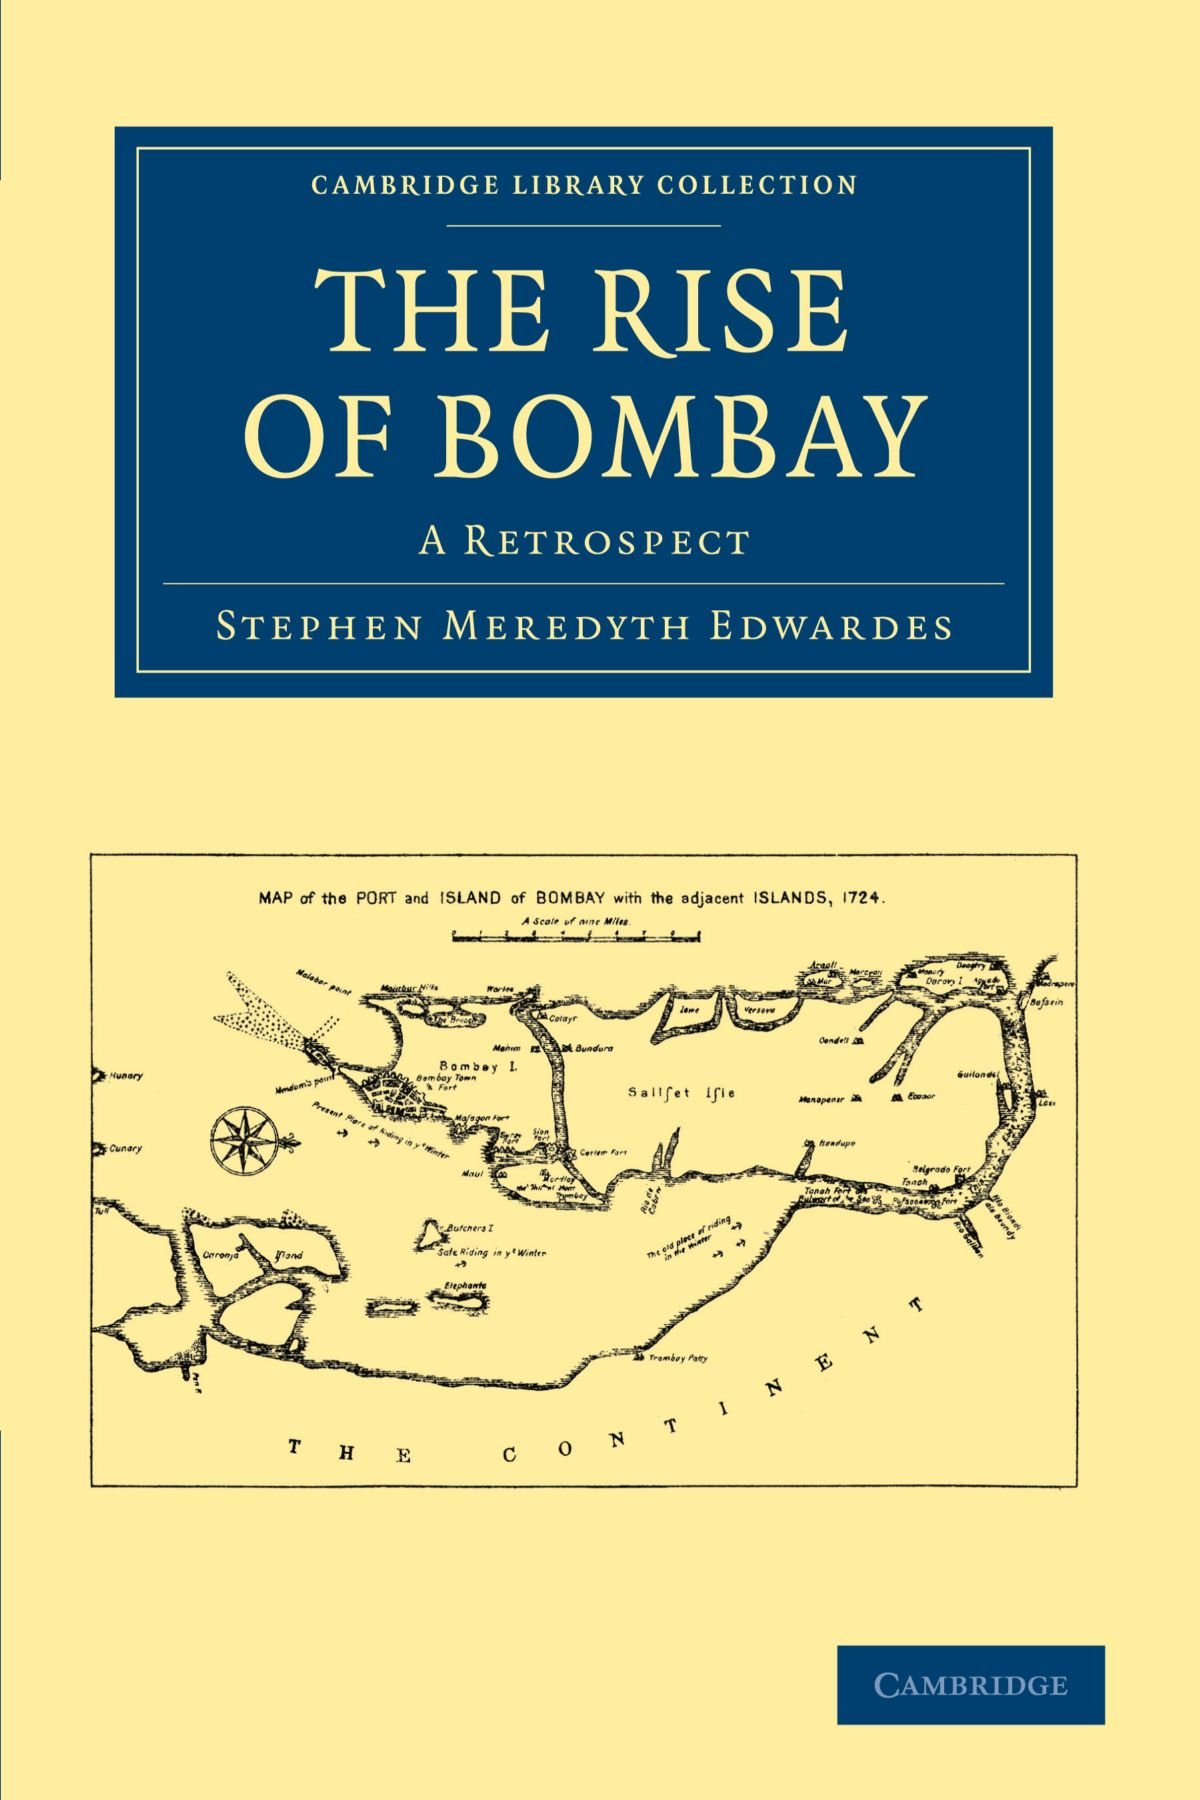 The Rise of Bombay: A Retrospect (Cambridge Library Collection - South Asian History) PDF